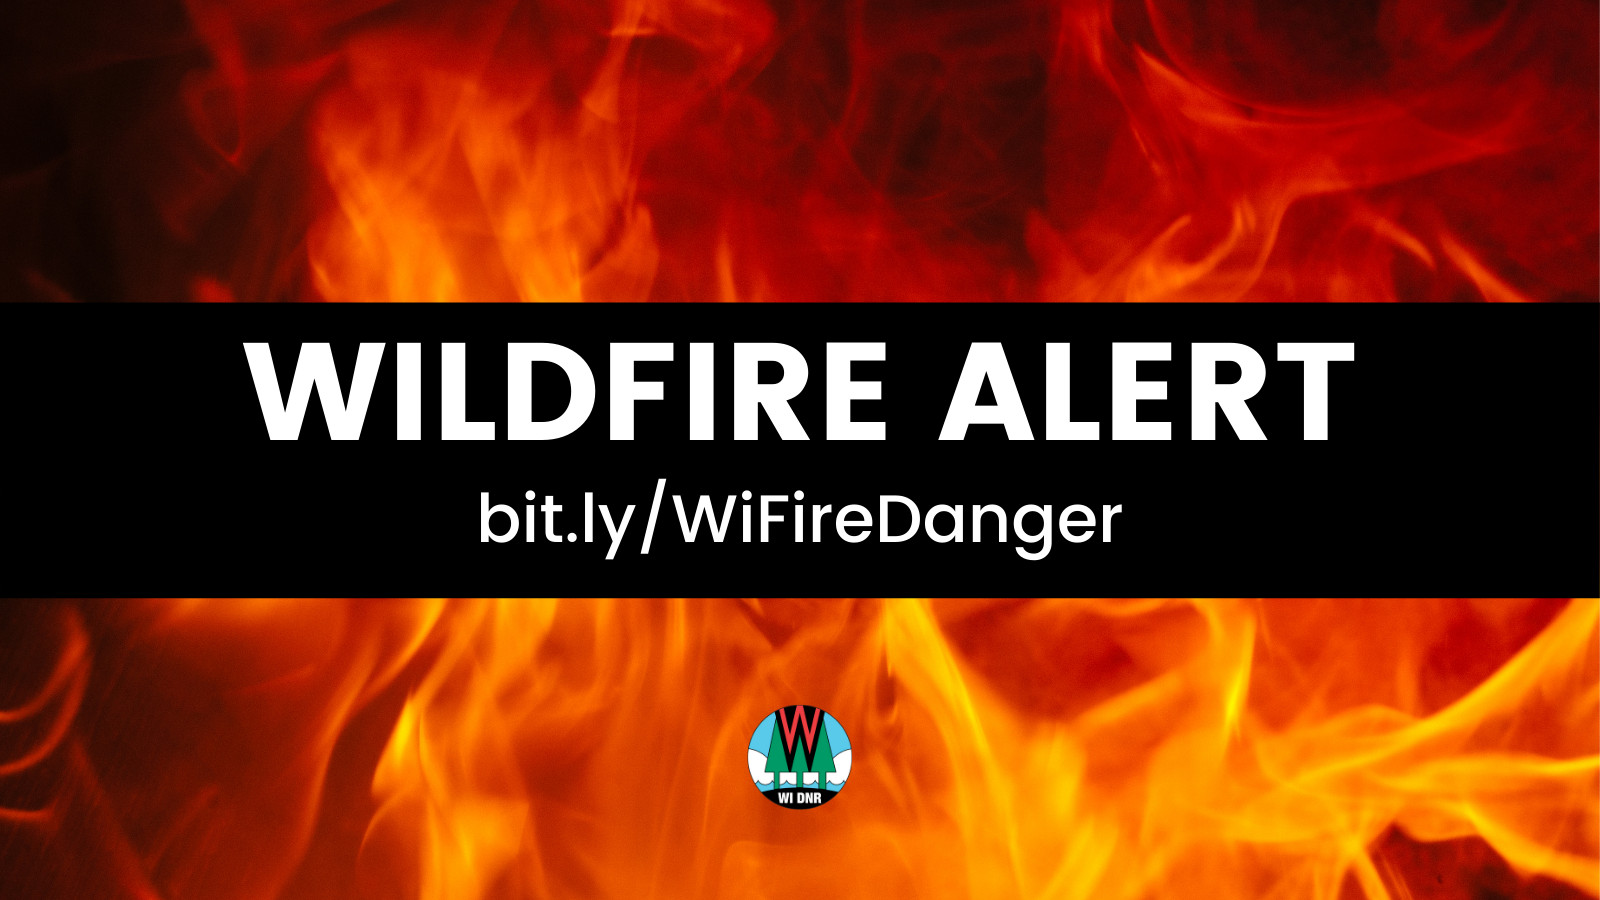 Wildfire Alert DNR Graphic with flames.